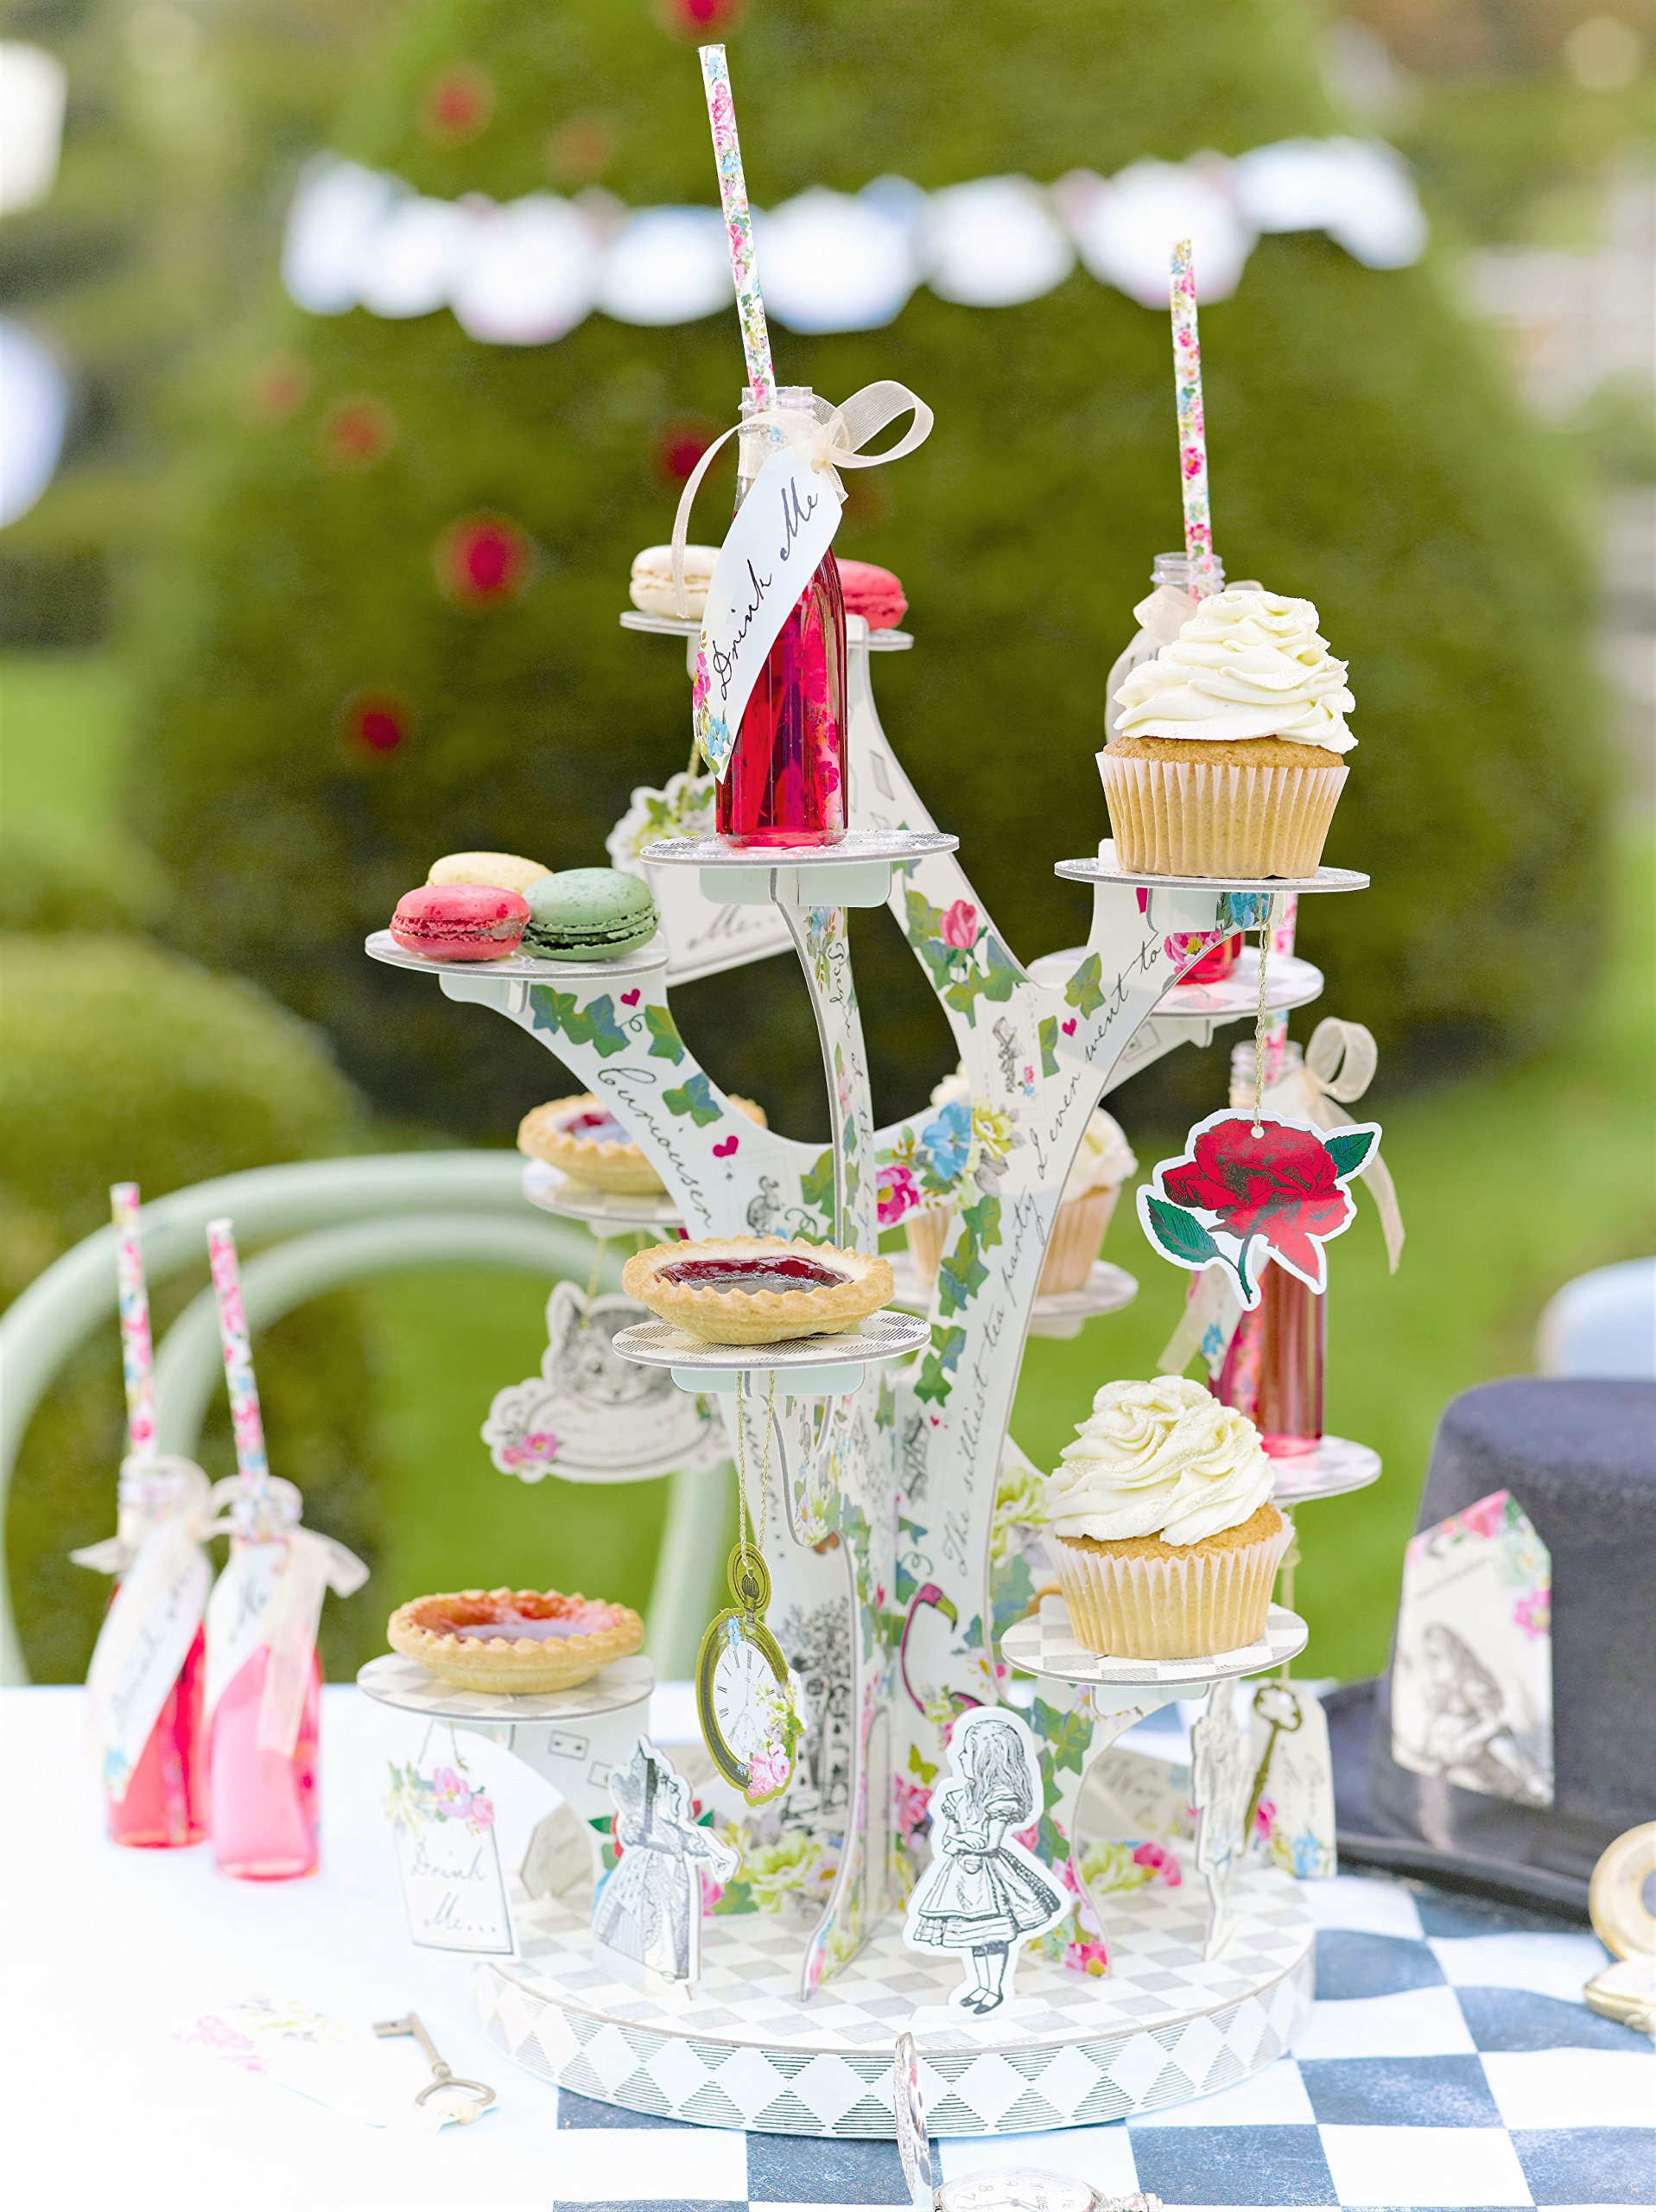 Talking Tables TSALICE-TREATSTAND Alice In Wonderland Cupcake Stand Centerpiece Mad Hatter Tea Party, Treat, Mixed colors by Talking Tables (Image #2)